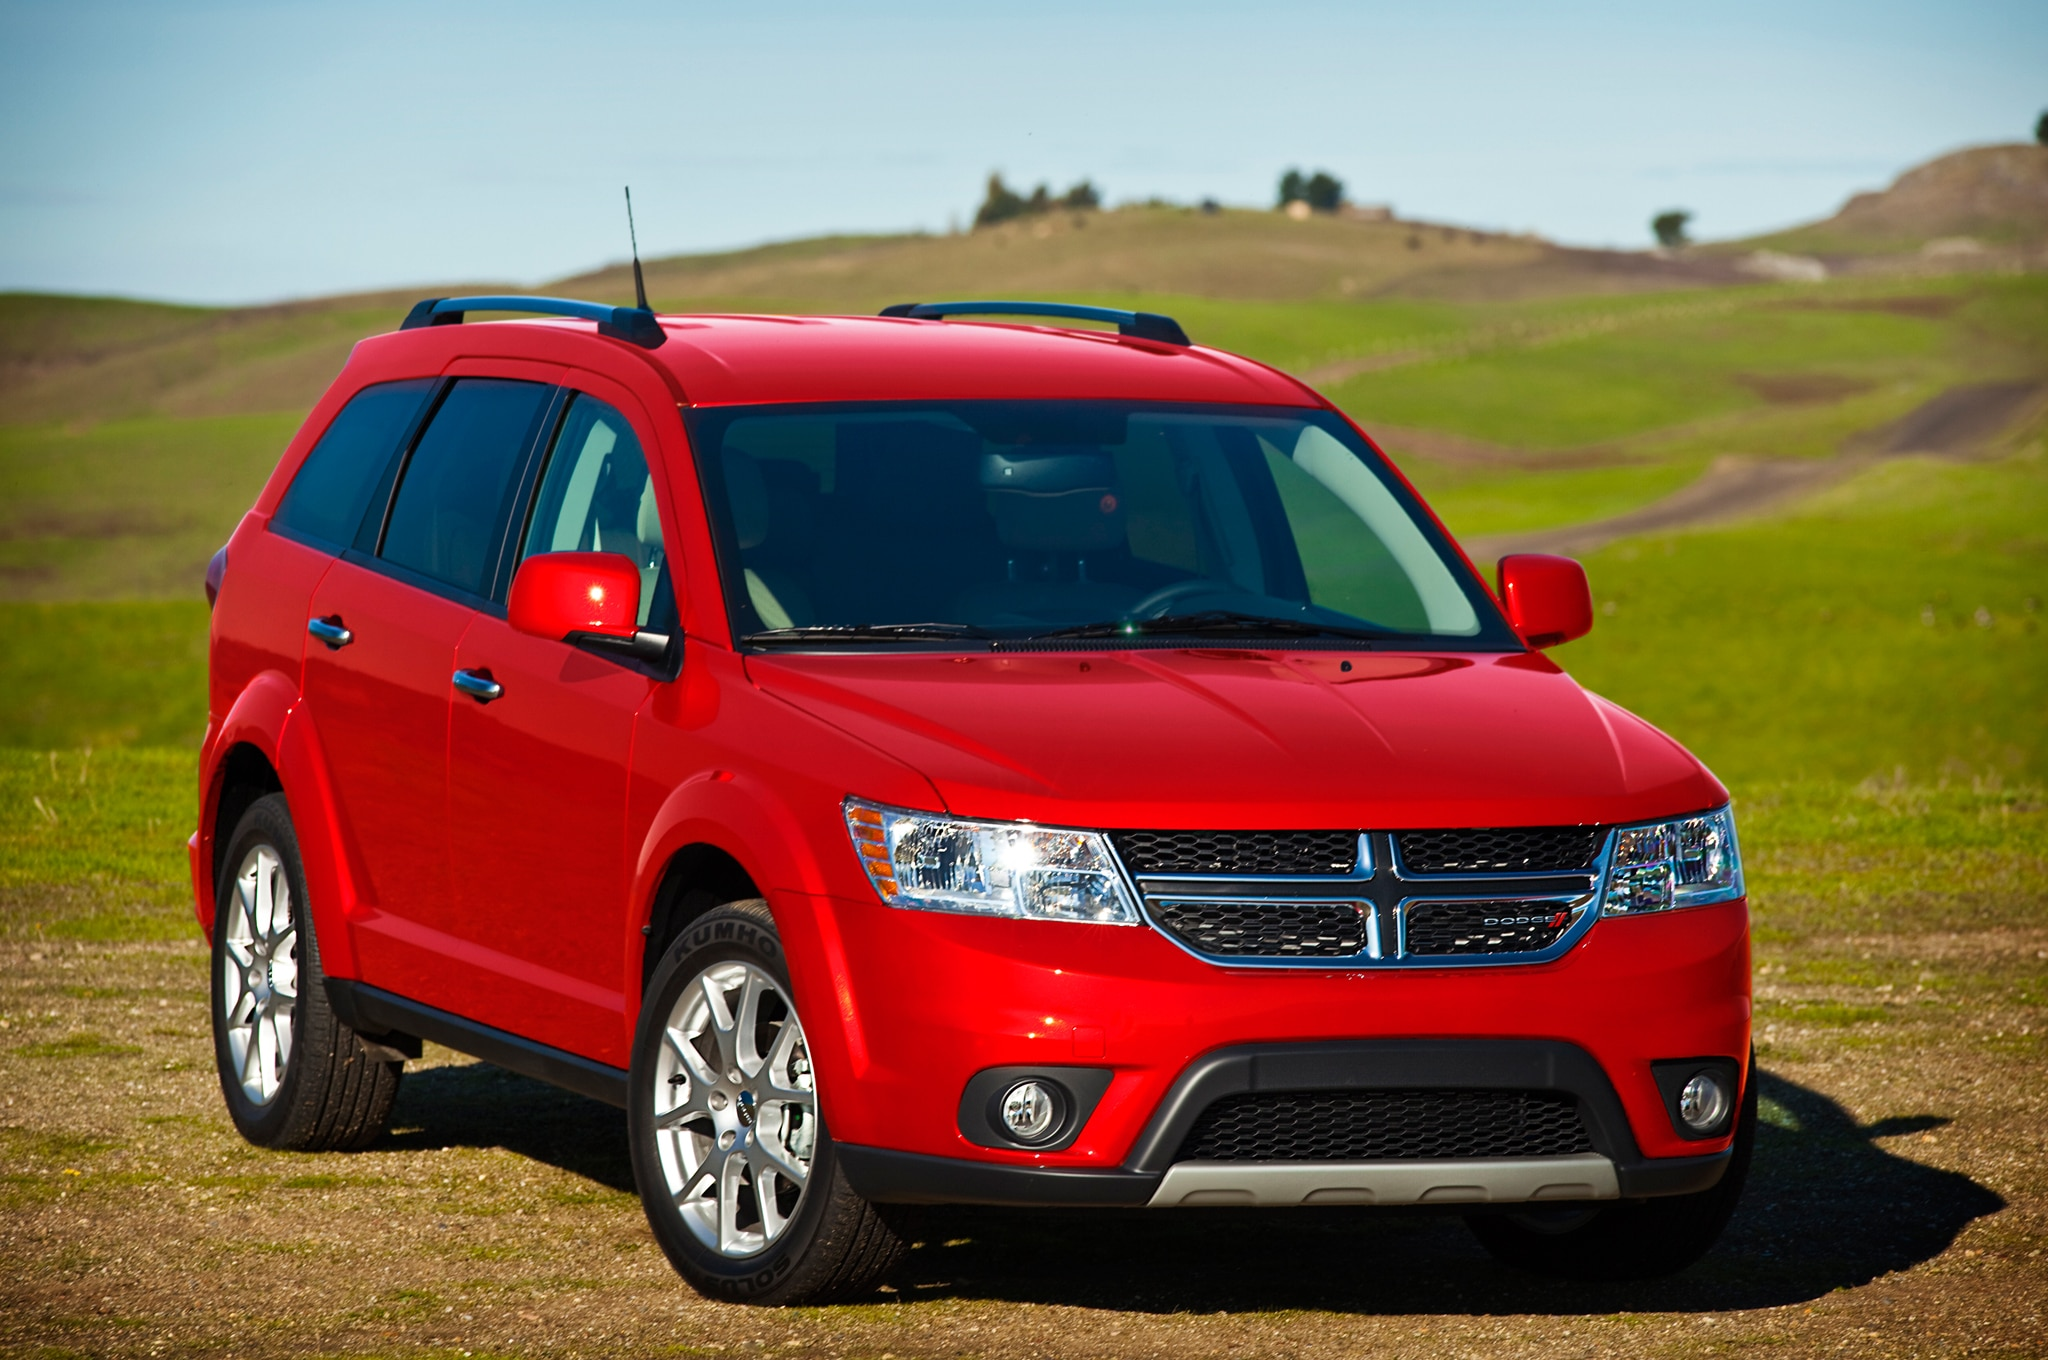 2014 Dodge Journey front three quarters 2014 dodge journey se v 6 awd priced at $25,890 automobile magazine 2016 dodge journey fuse box location at gsmportal.co